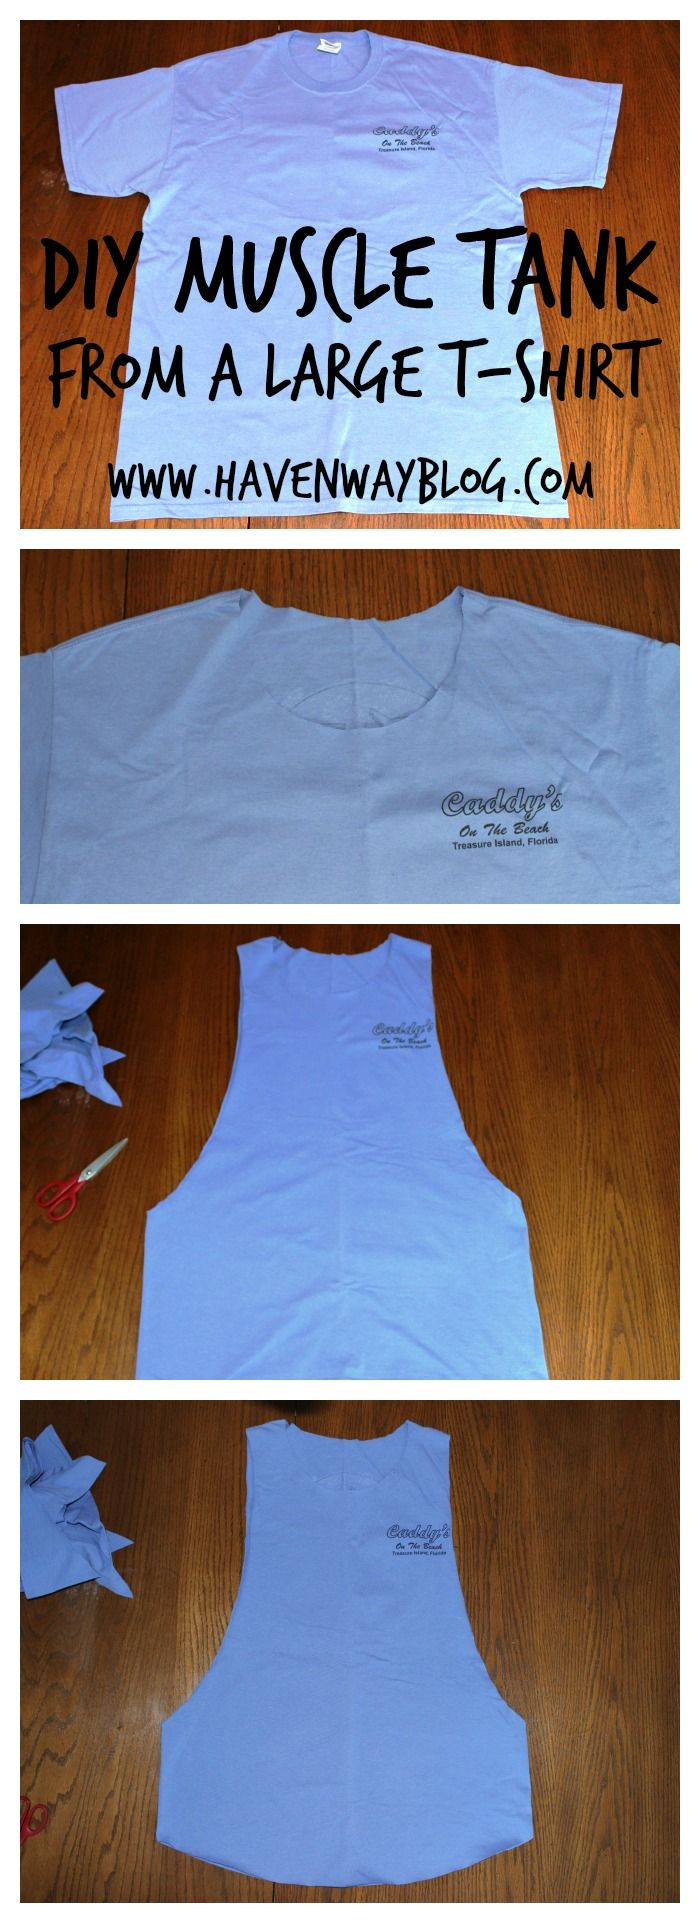 DIY Muscle Tank from a large T-Shirt | Haven Way